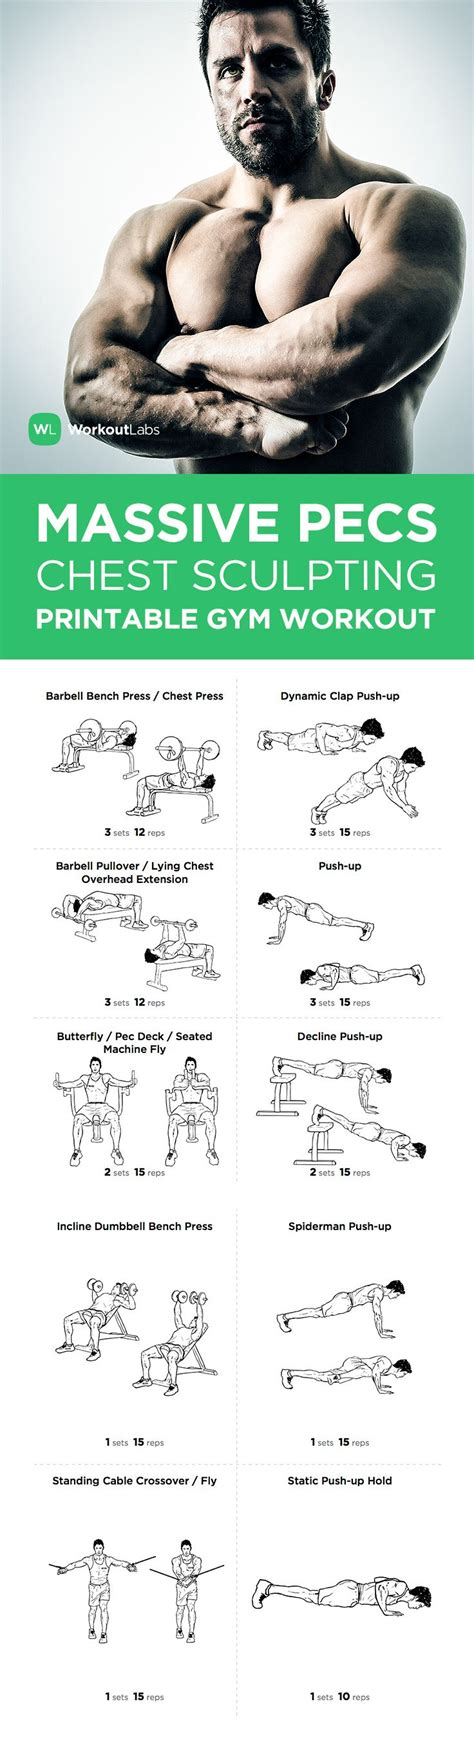 free pdf pecs chest sculpting workout for